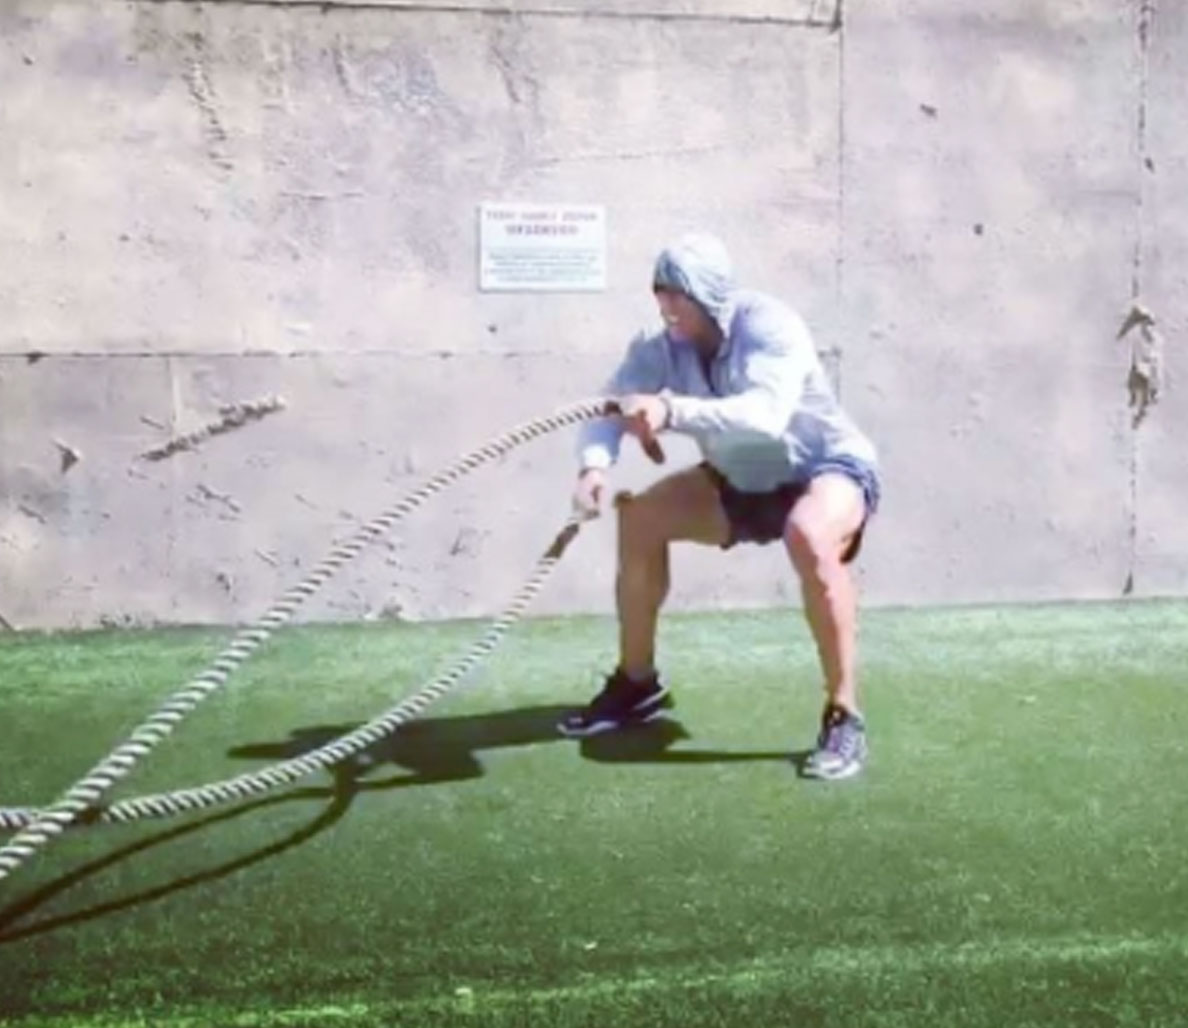 How to Finish Off an Intense Battle Ropes Training Session Like Dwayne Johnson